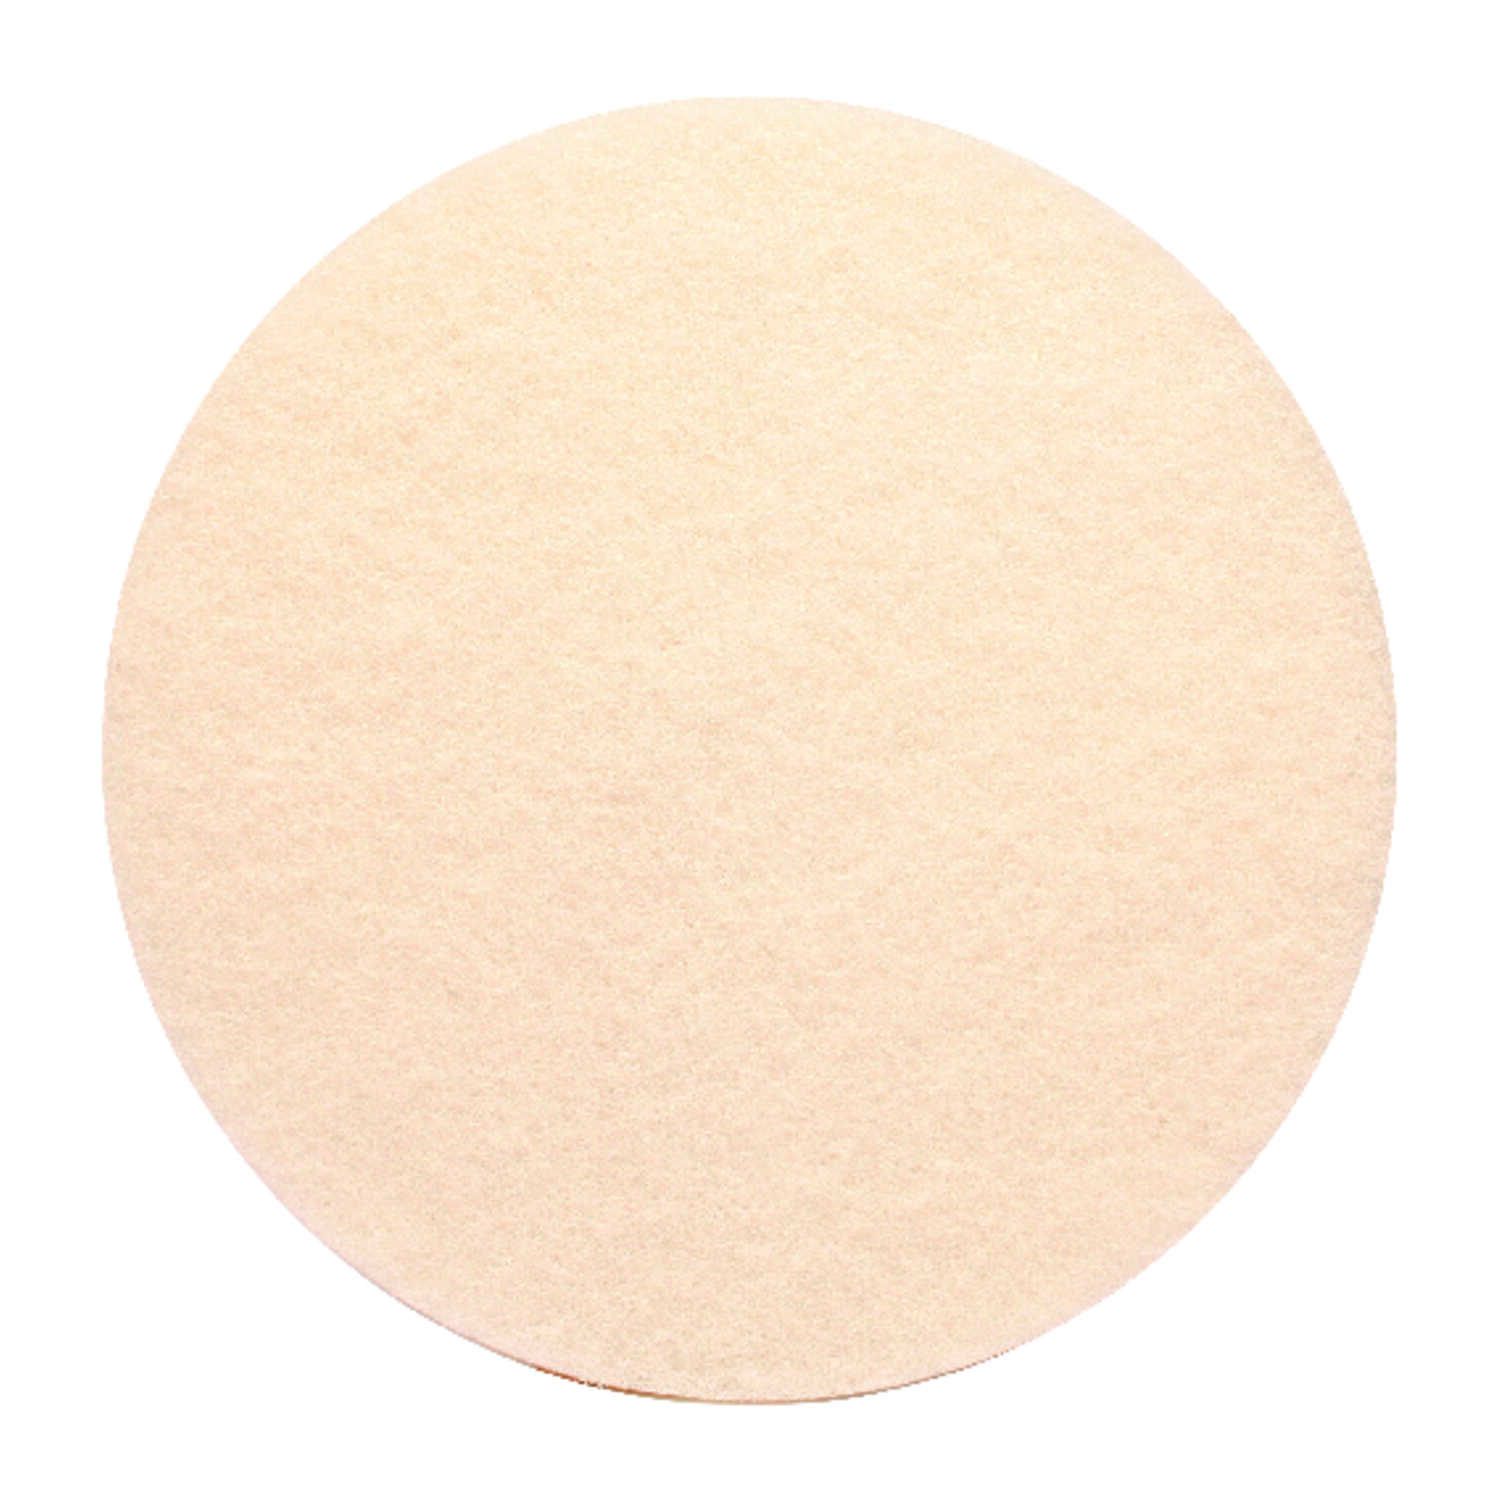 Gator  13 in. Dia. Non-Woven Natural/Polyester Fiber  White  Floor Pad Disc